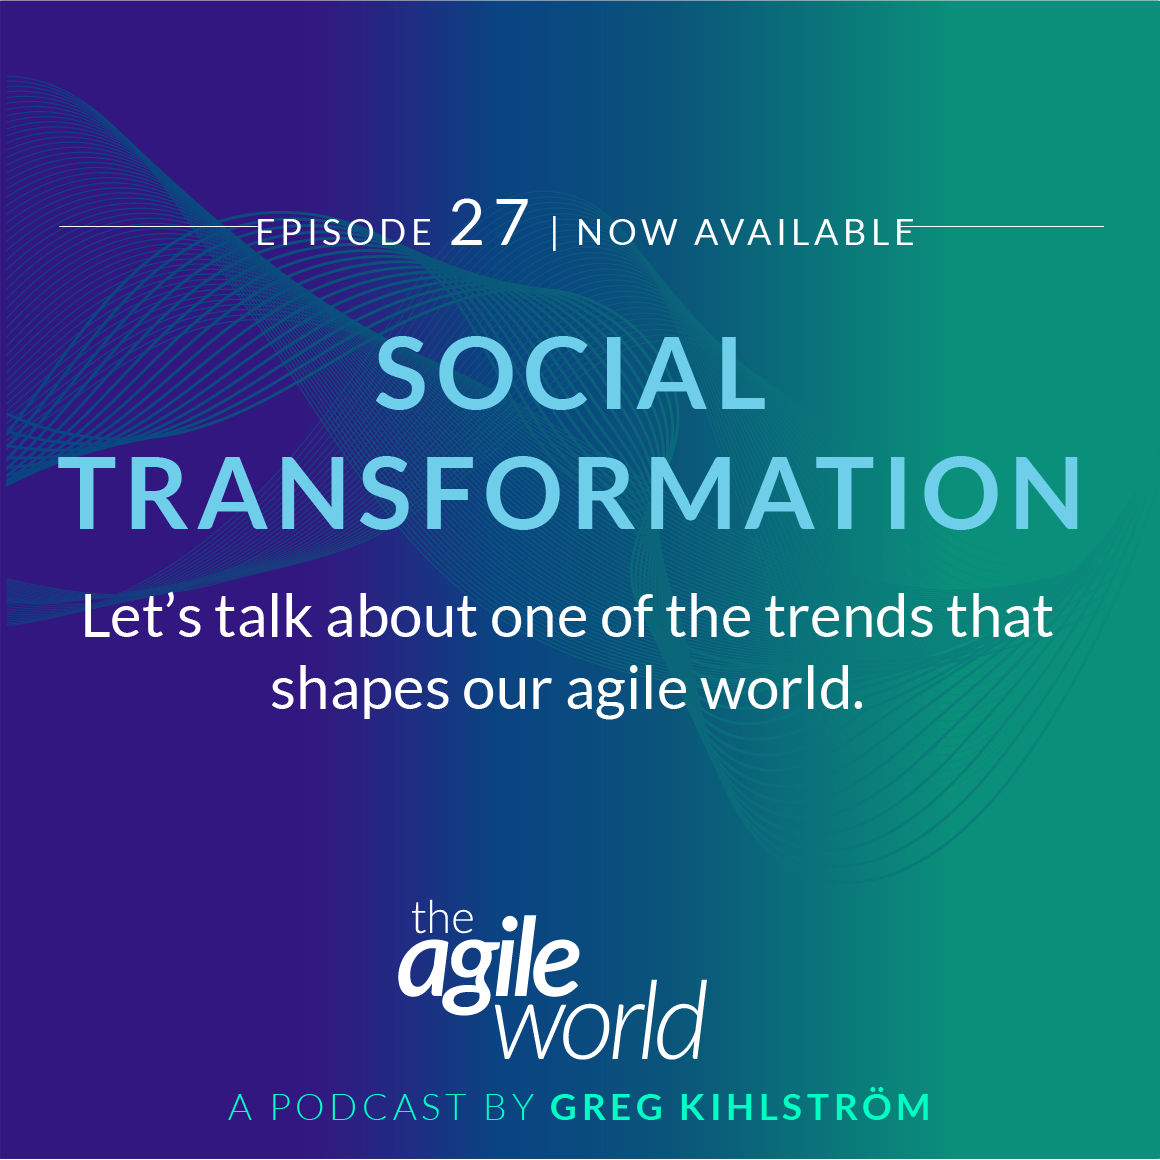 TheAgileWorld-Episode-27.png